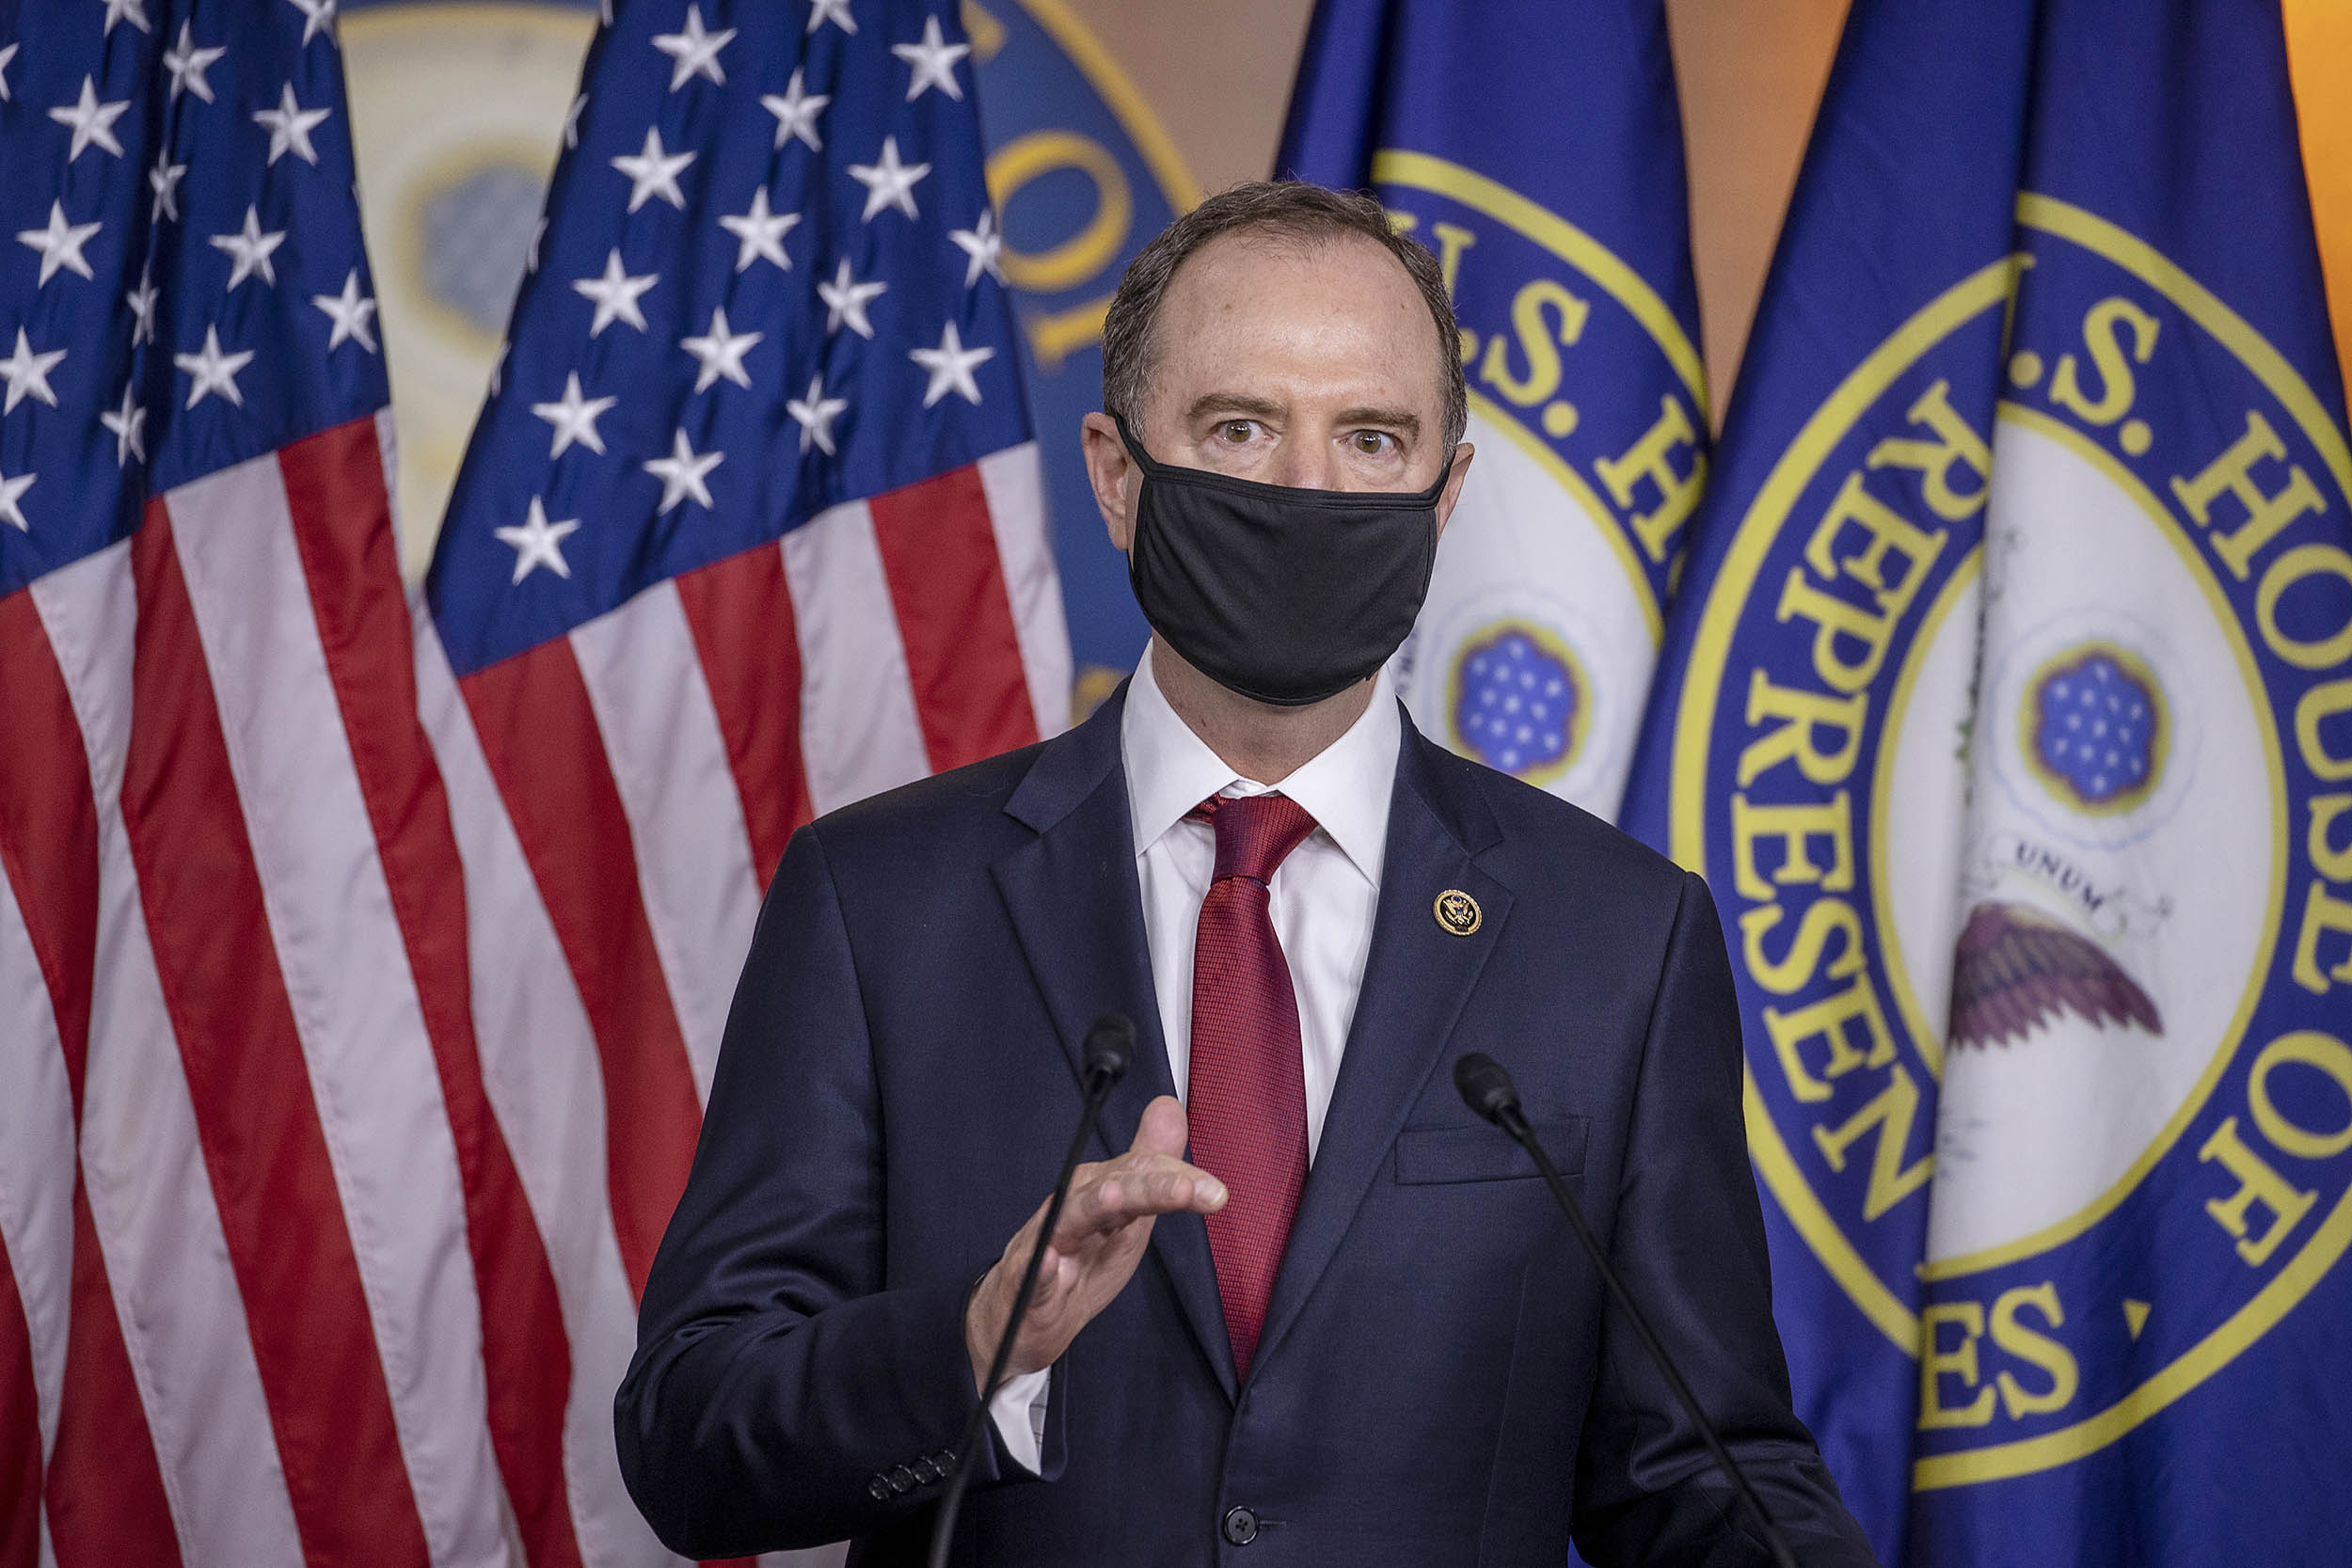 Rep. Adam Schiff (D-CA) speaks at a press conference on Capitol Hill on June 30, in Washington, DC.